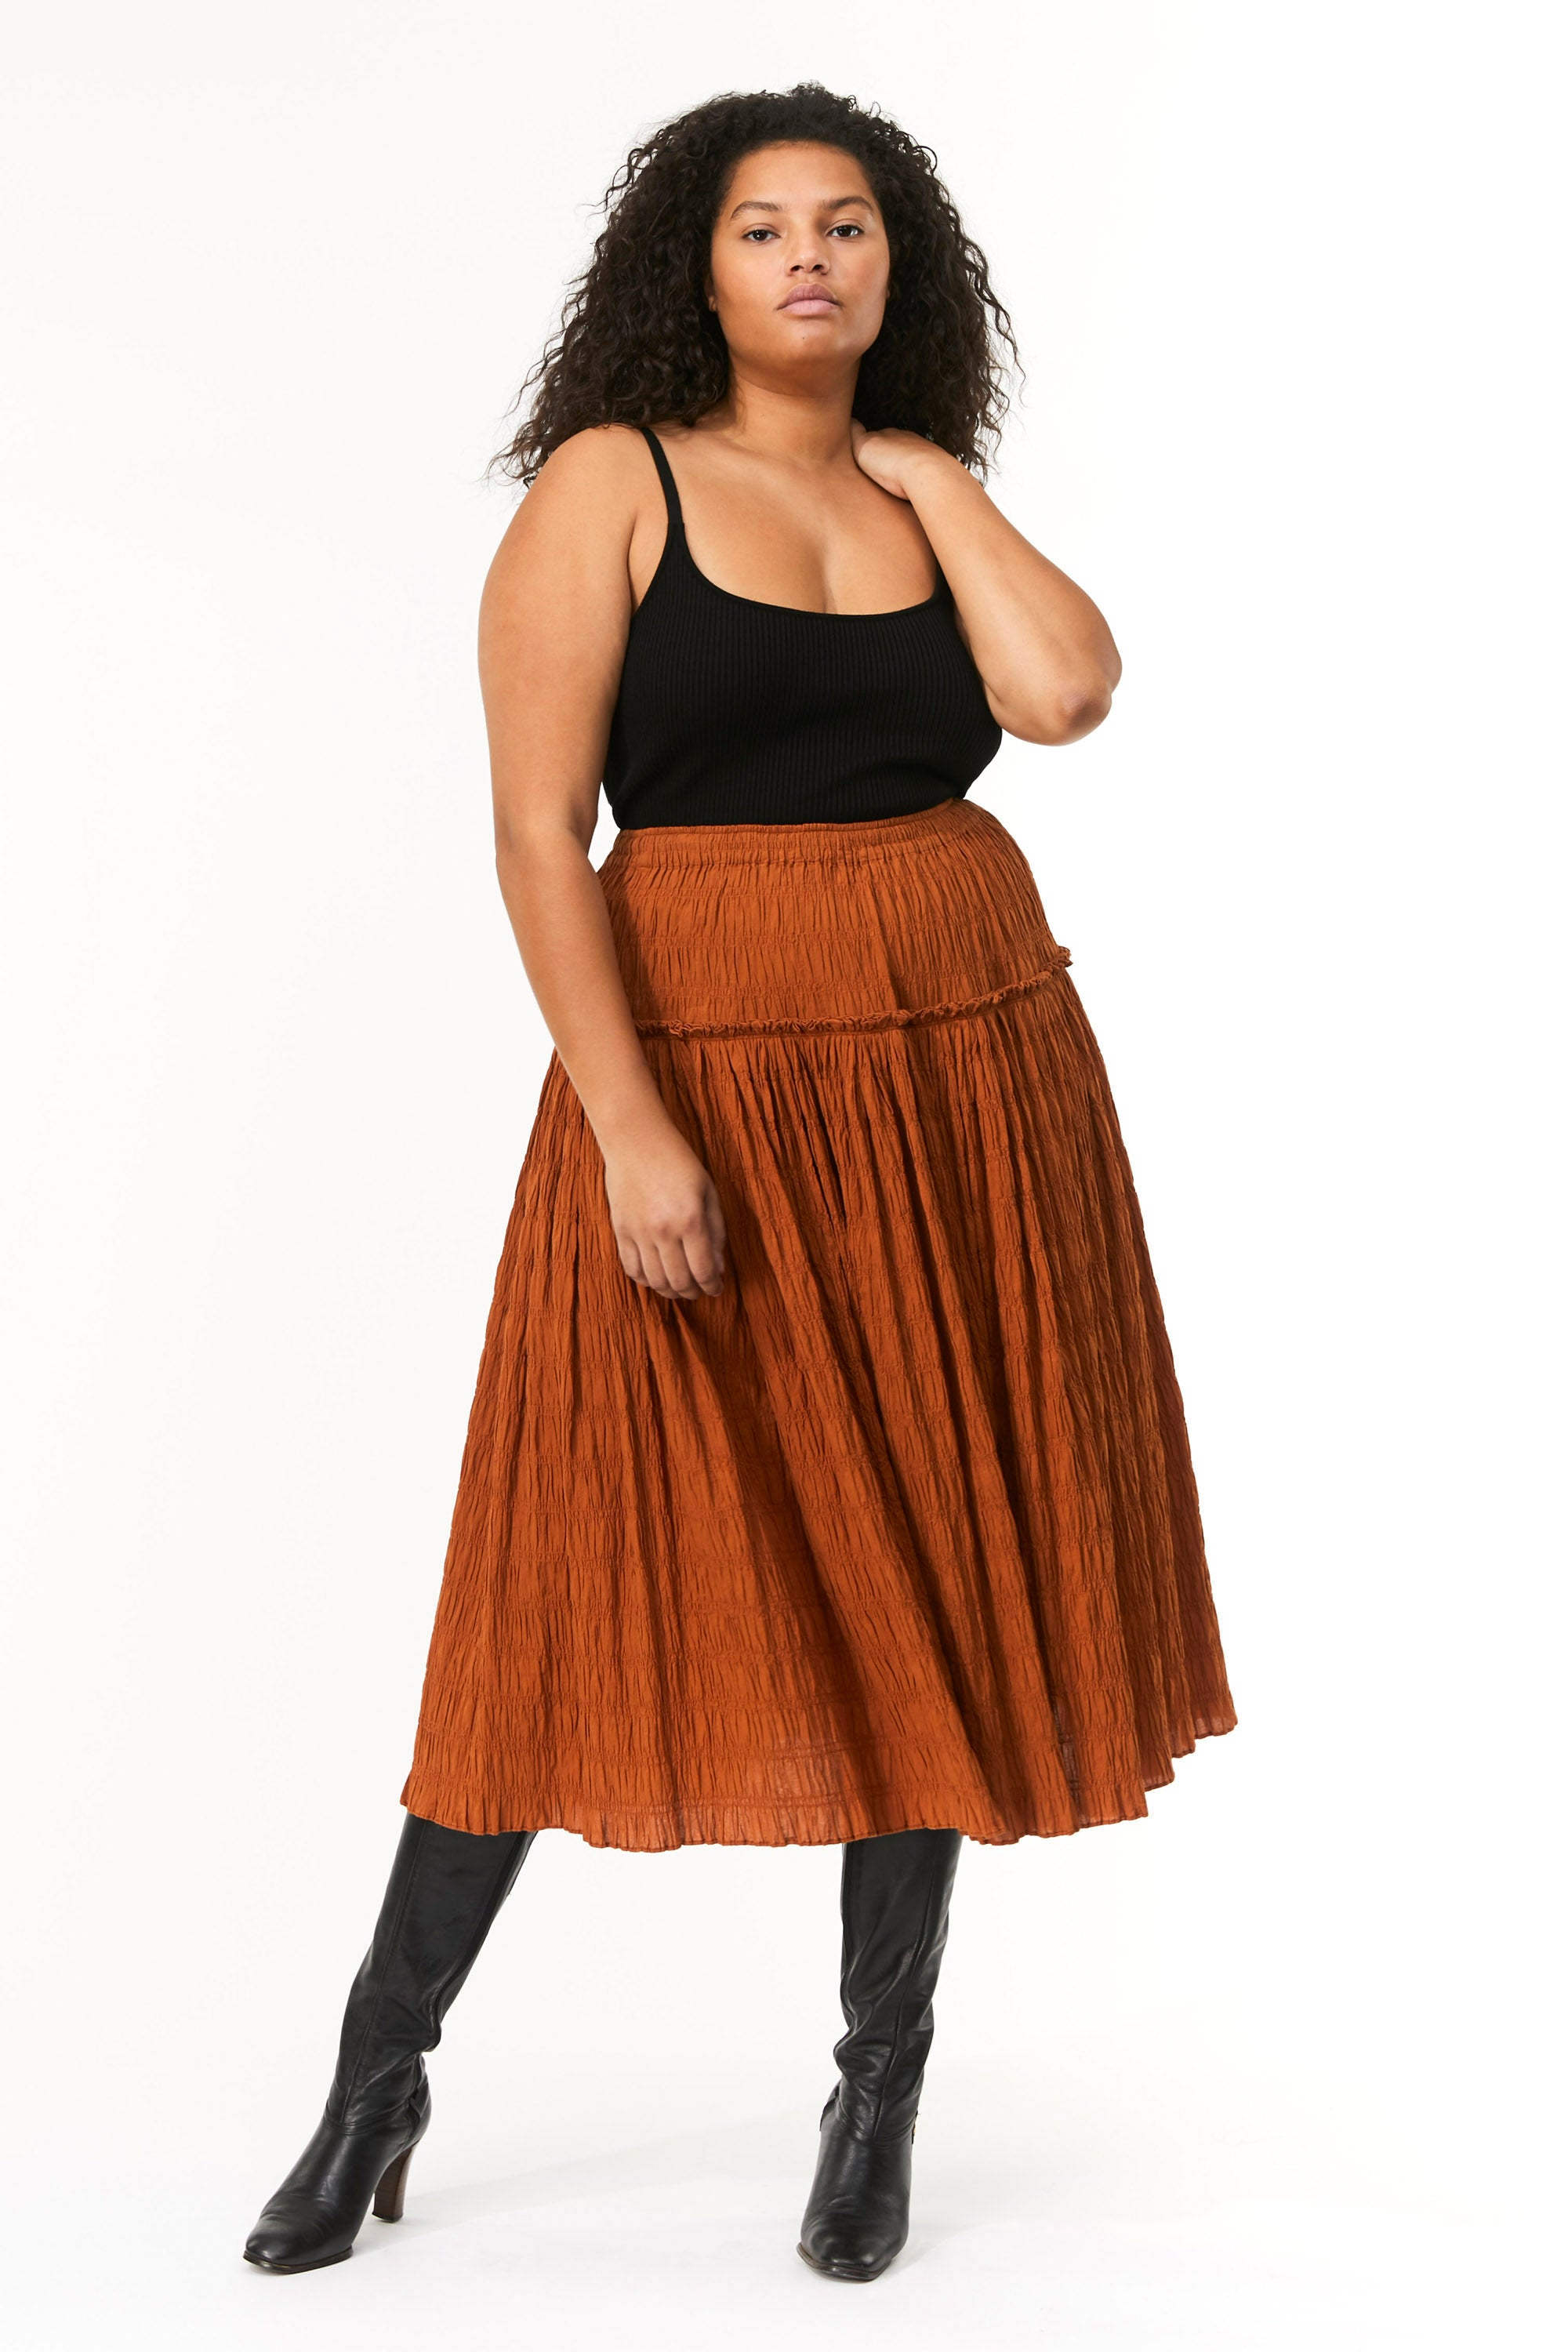 Extended Mara Hoffman Brown Alejandra Skirt in organic cotton (movement)